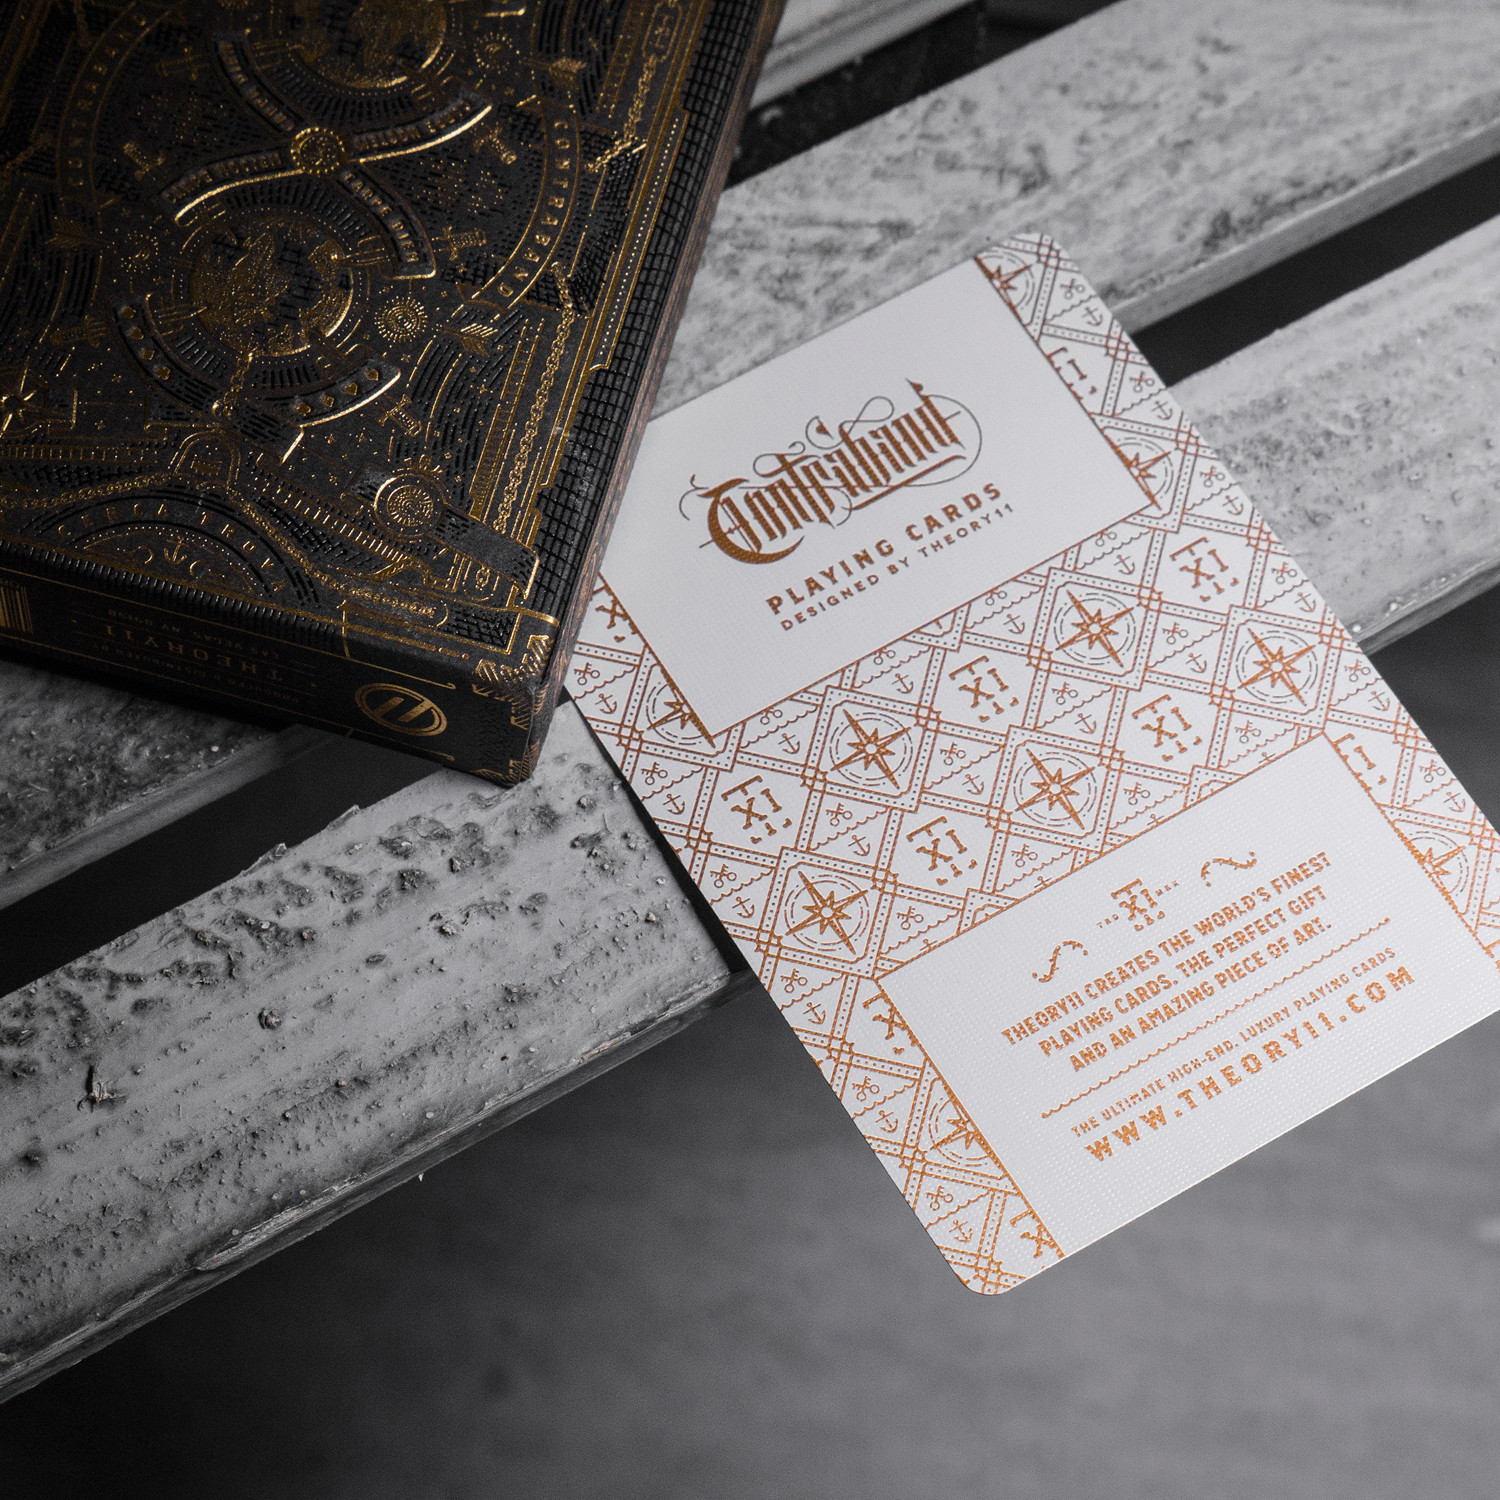 medallion contraband playing cards 2 deck set theory11